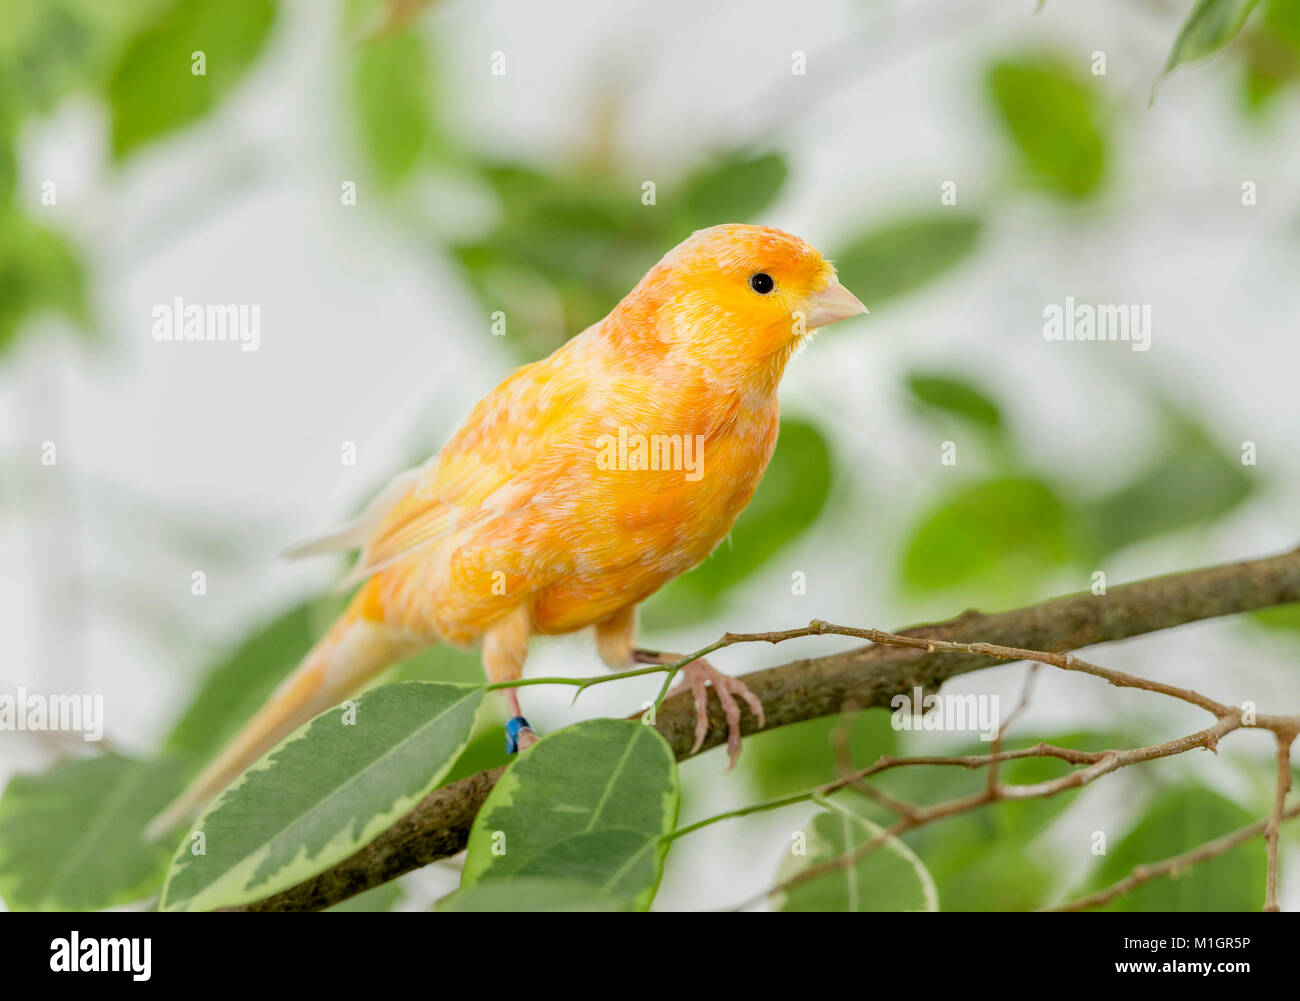 Domestic Canary. Orange bird perched on a Benjamin Fig twig. Germany - Stock Image